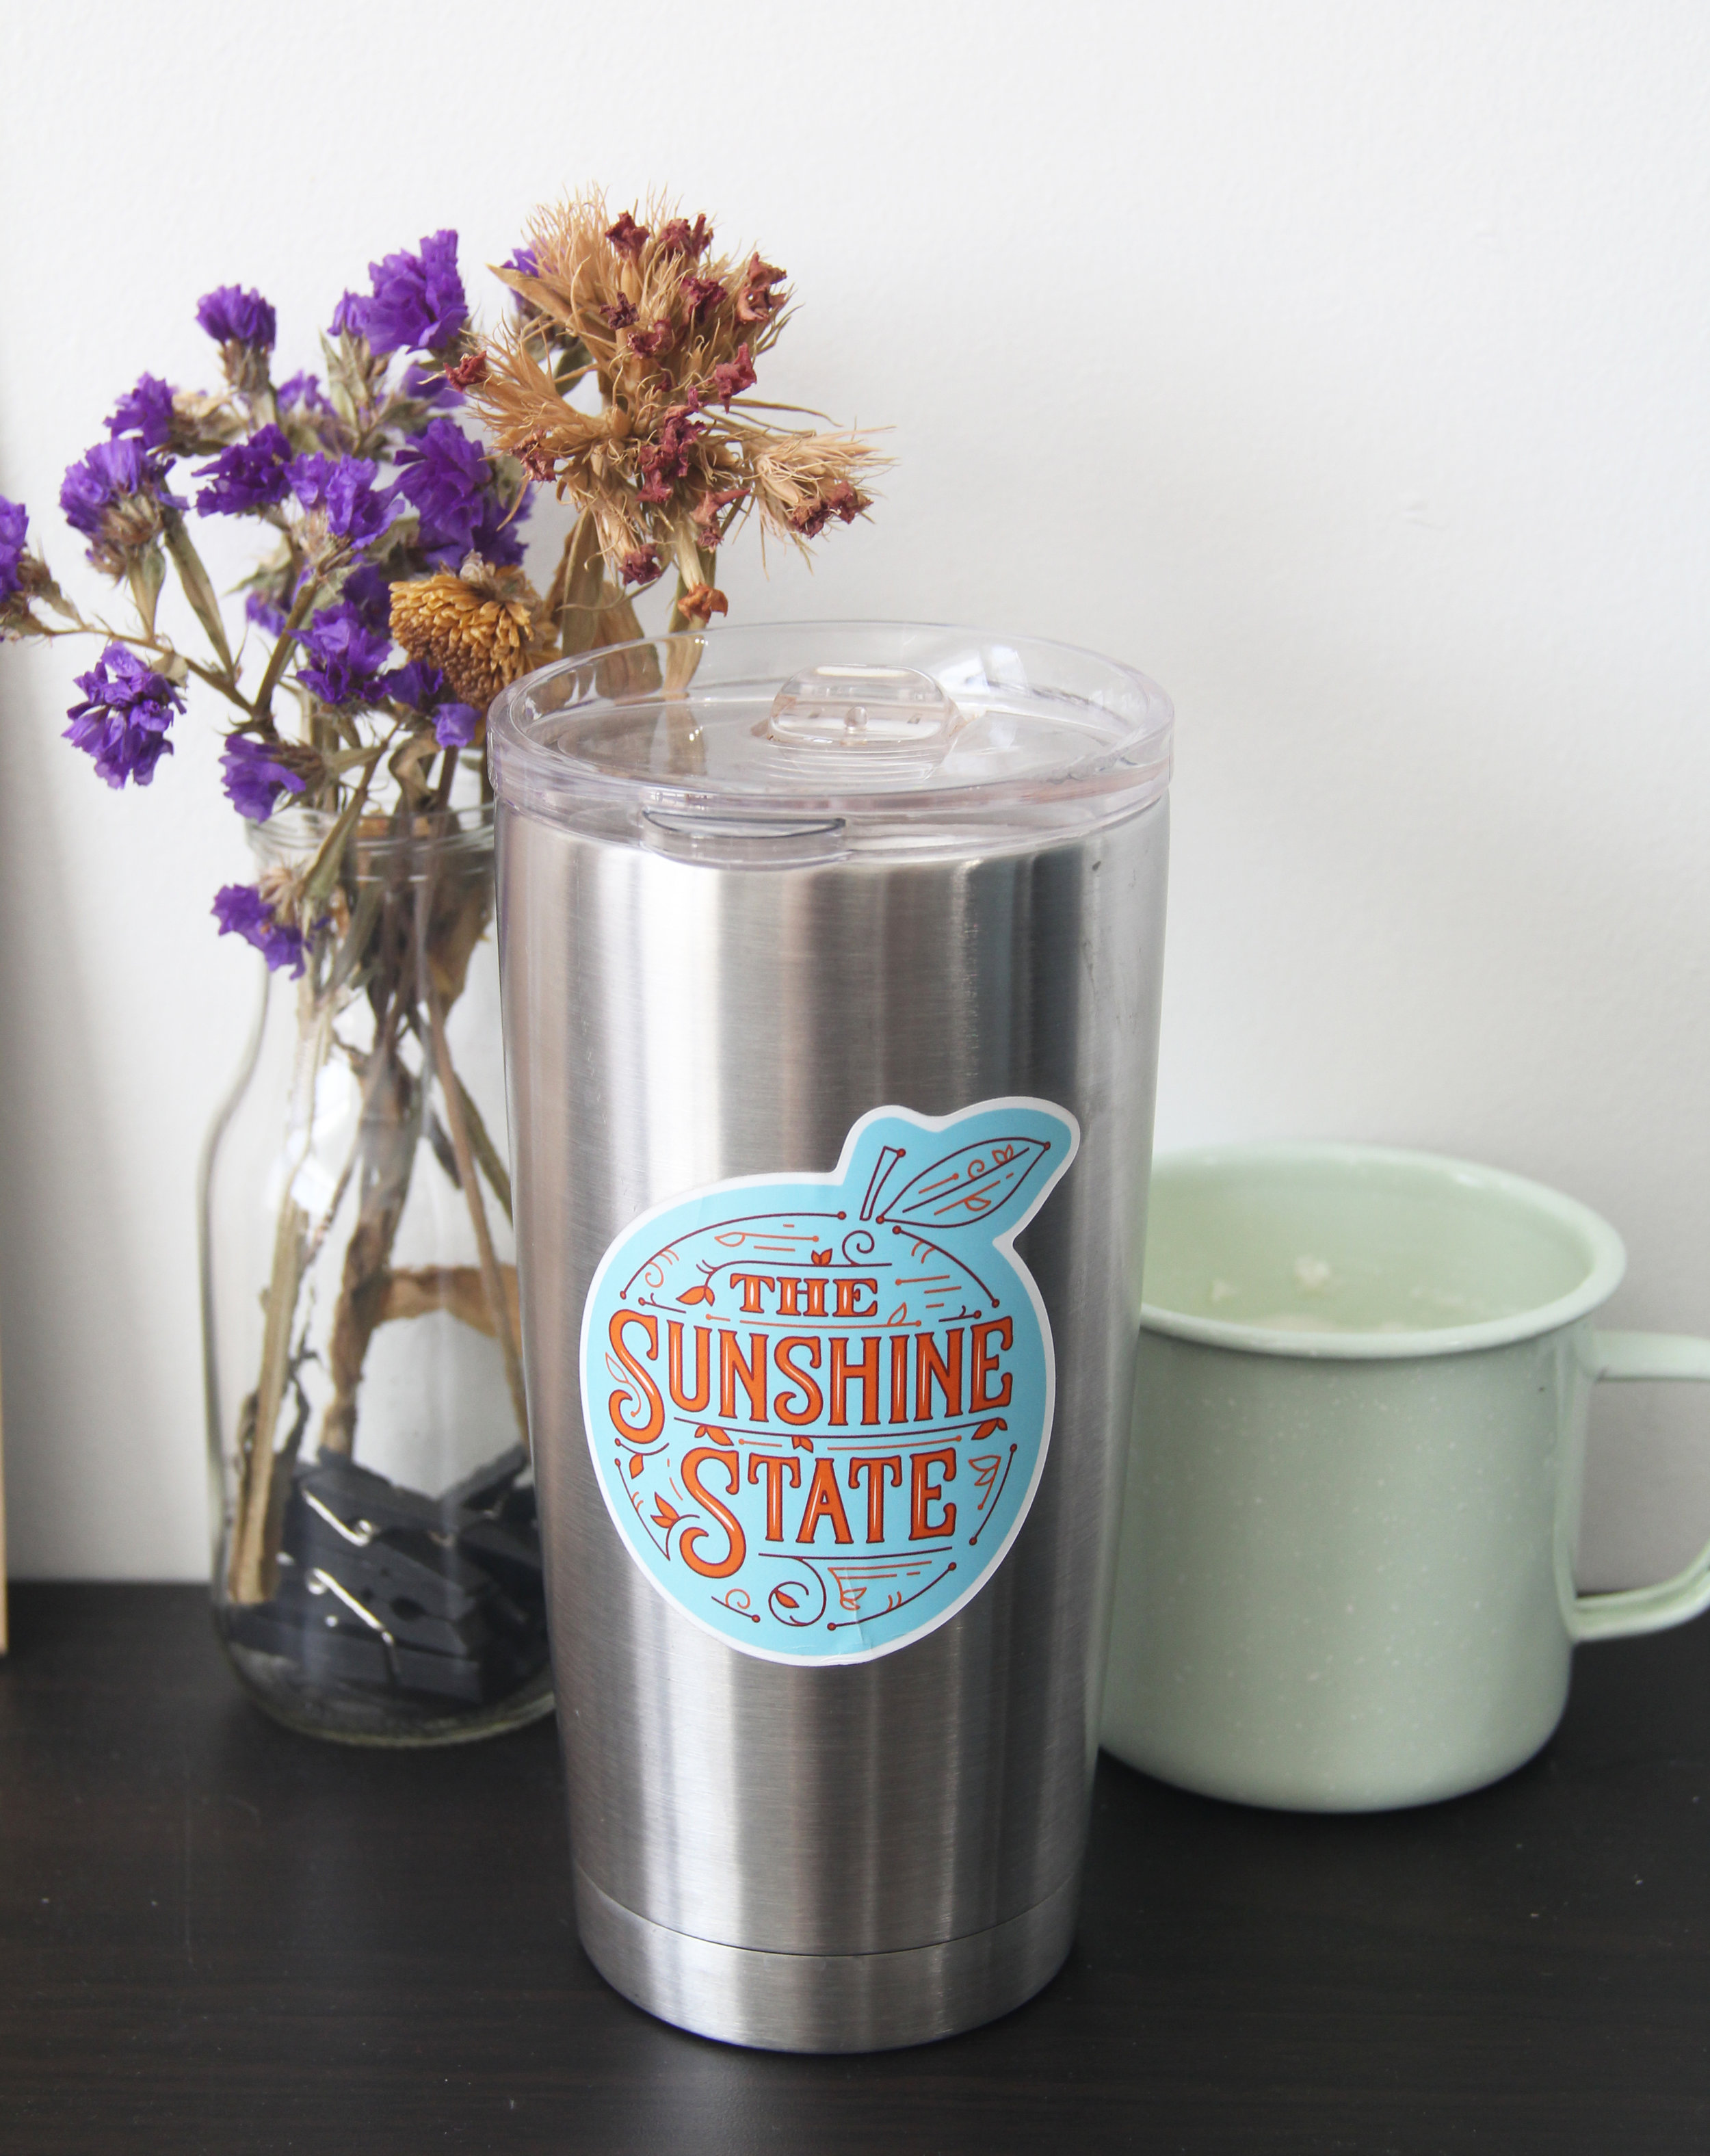 Sunshine State Sticker by Caroline Staniski